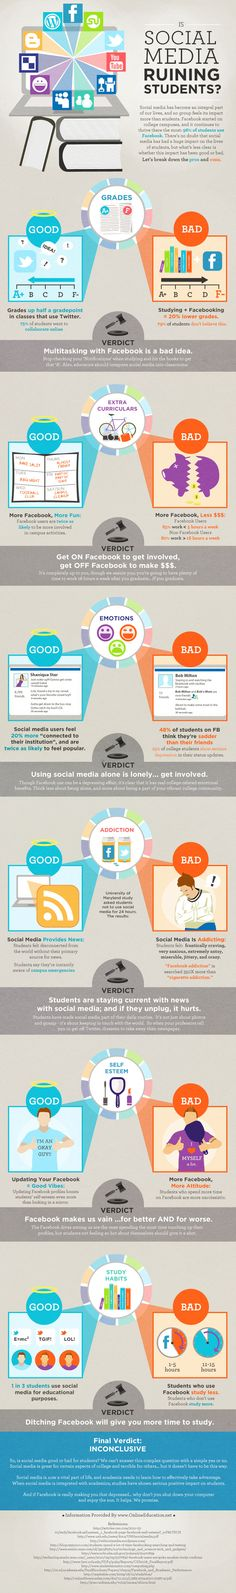 Facebook not so good, but Twitter is? #think #issues #world #society  #knowledge #social #media #student